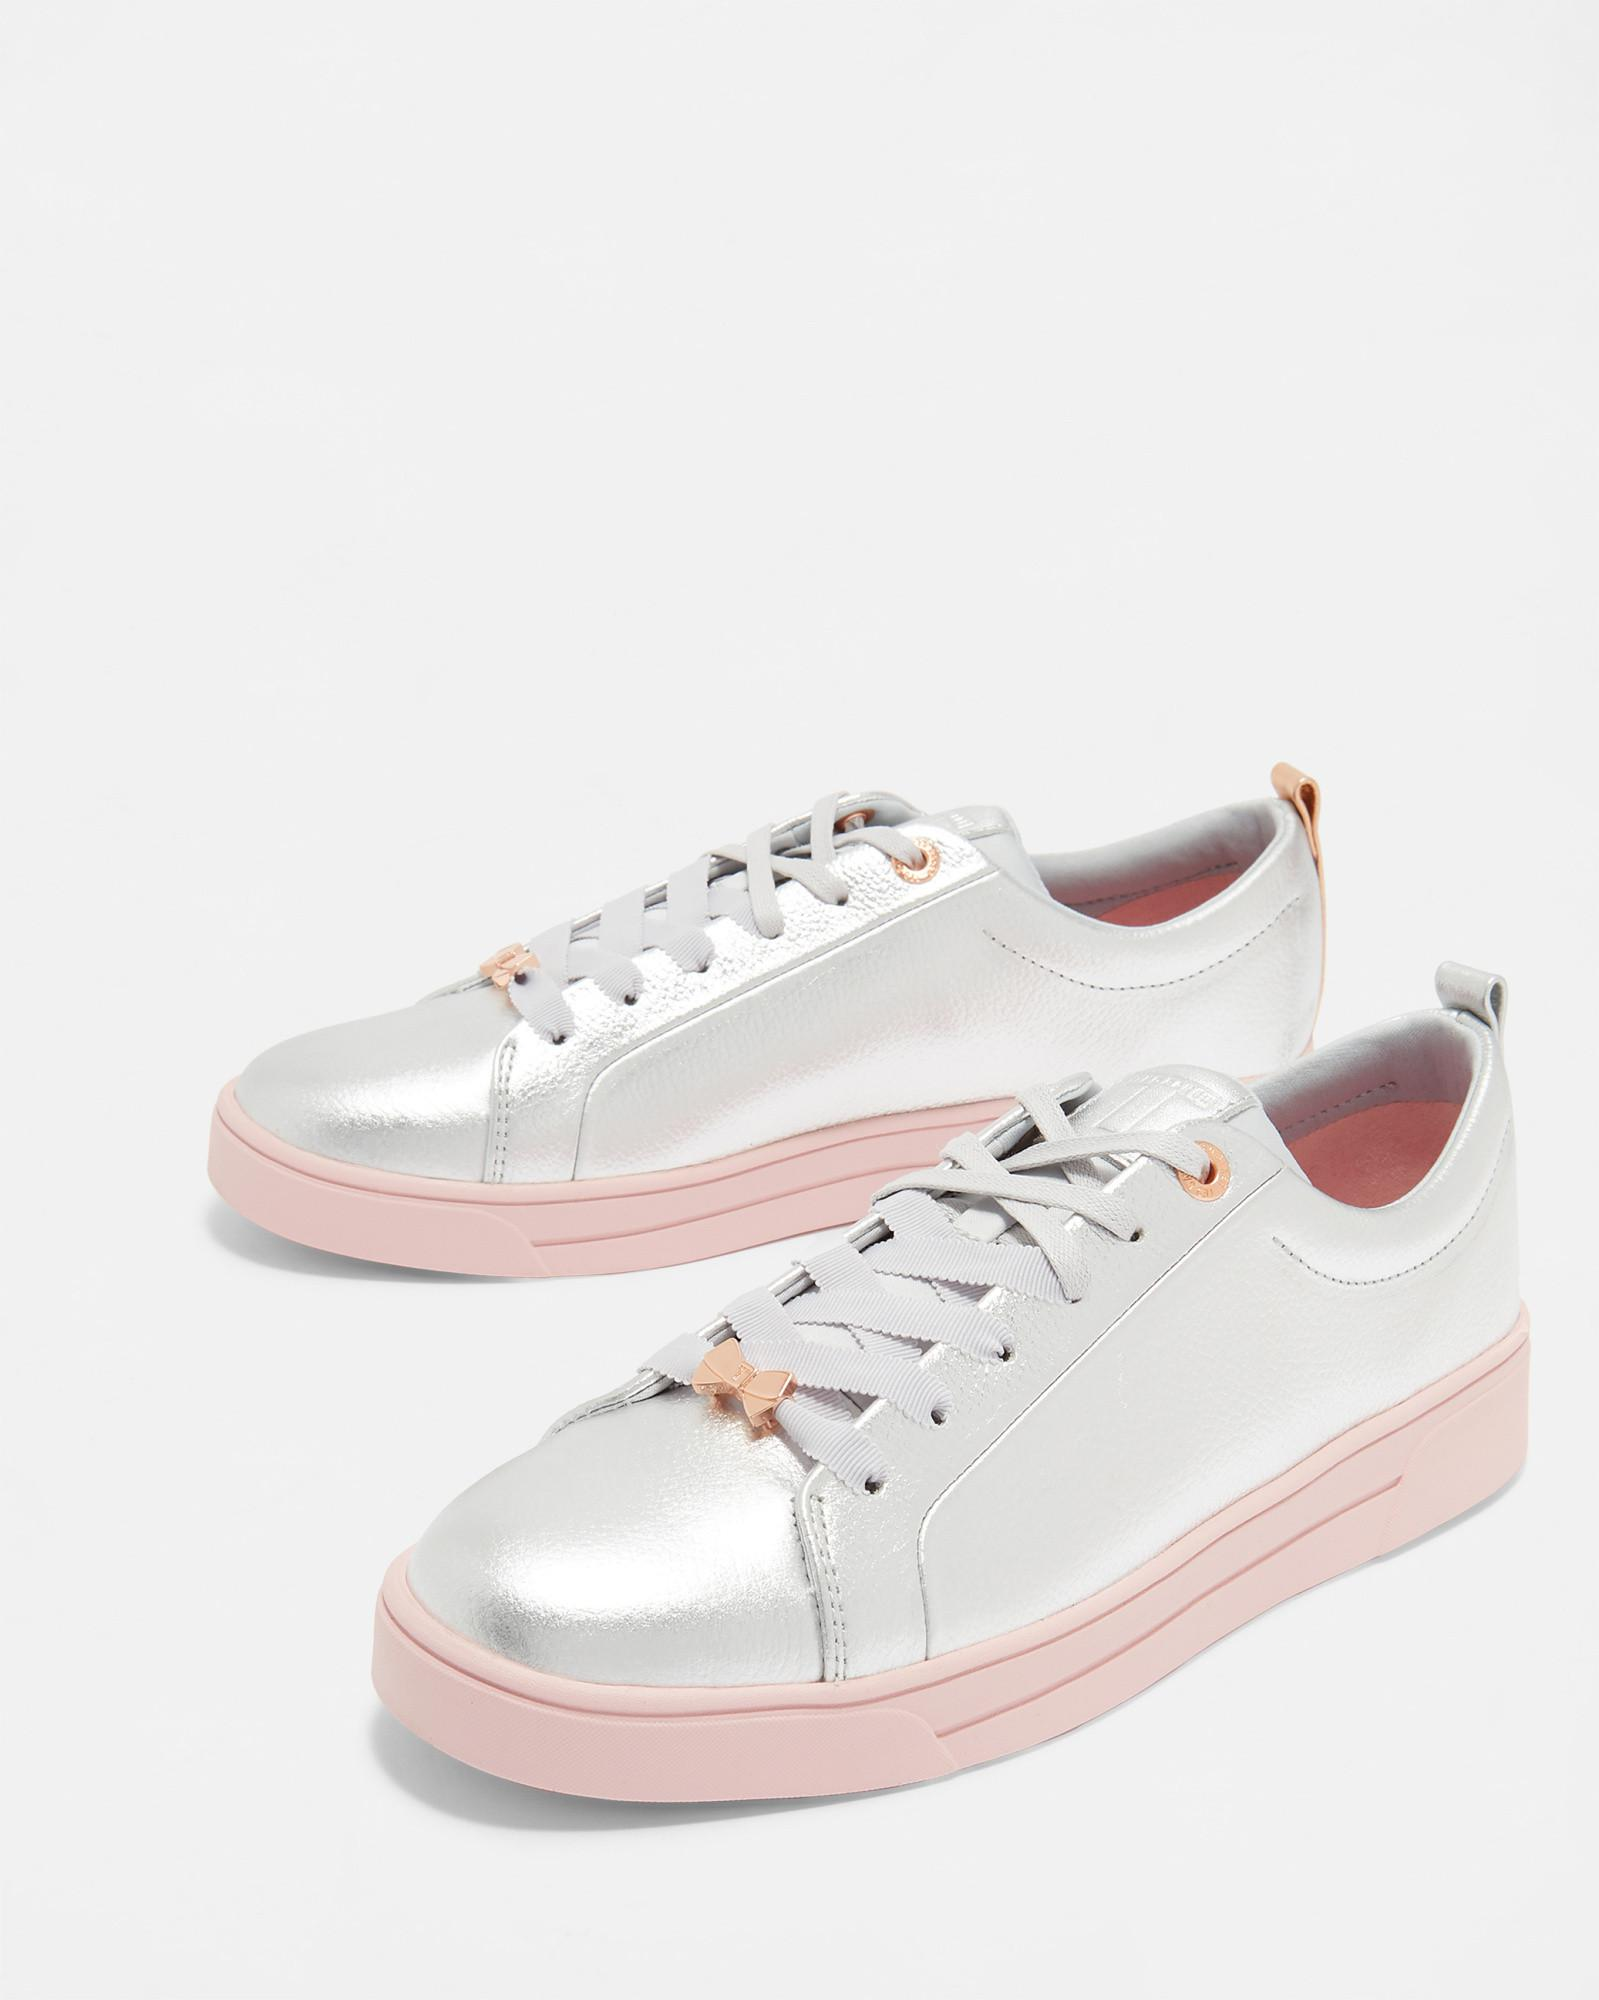 0eb44e51c Ted Baker Lace Up Tennis Trainers in Metallic - Lyst